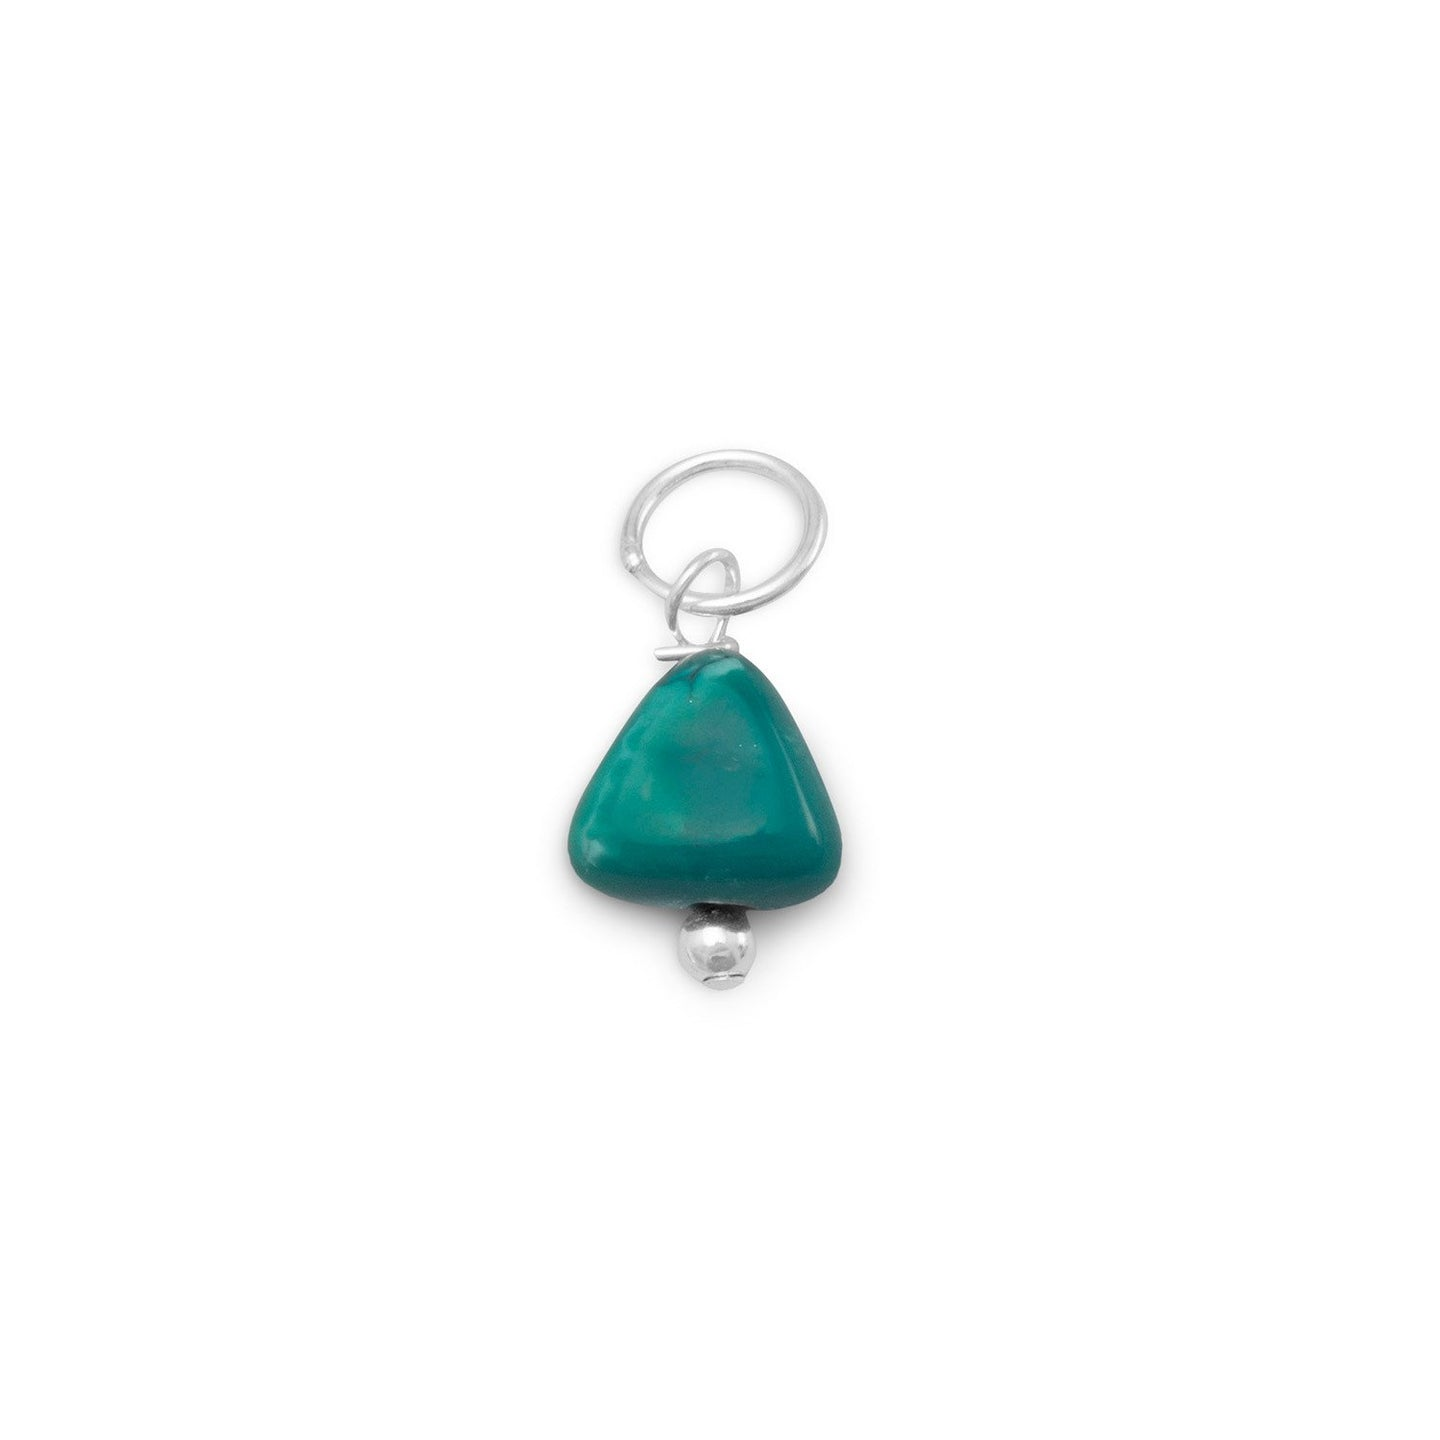 Reconstituted Turquoise Nugget Charm - December Birthstone - the-southern-magnolia-too